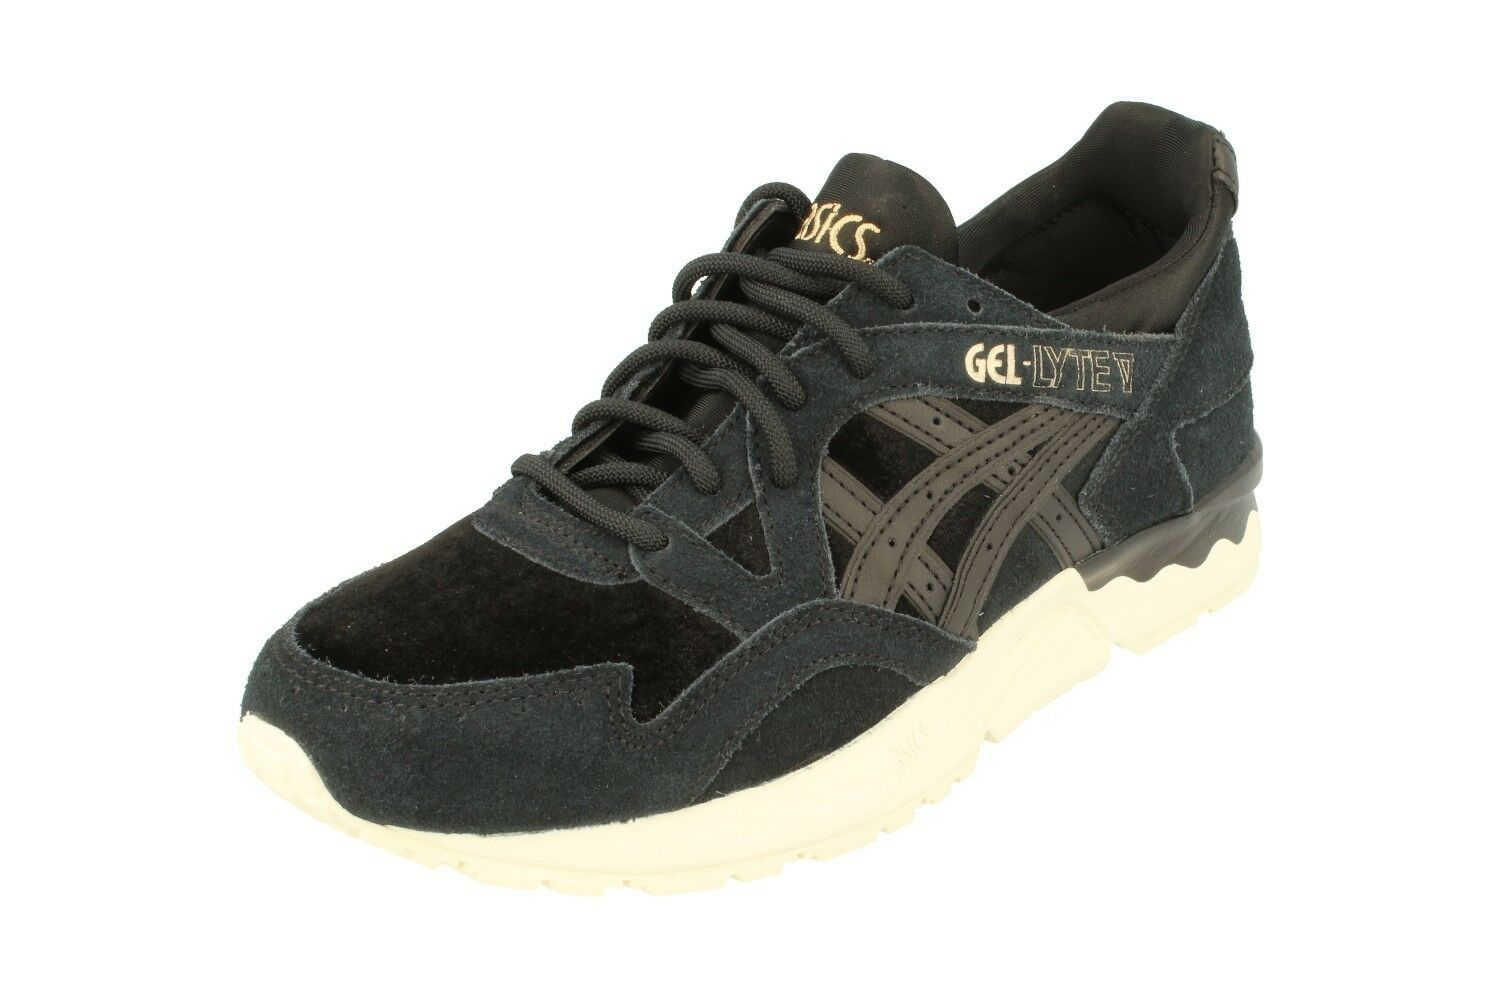 Asics Gel-Lyte V Womens Running Trainers H76Vq Sneakers shoes  9090